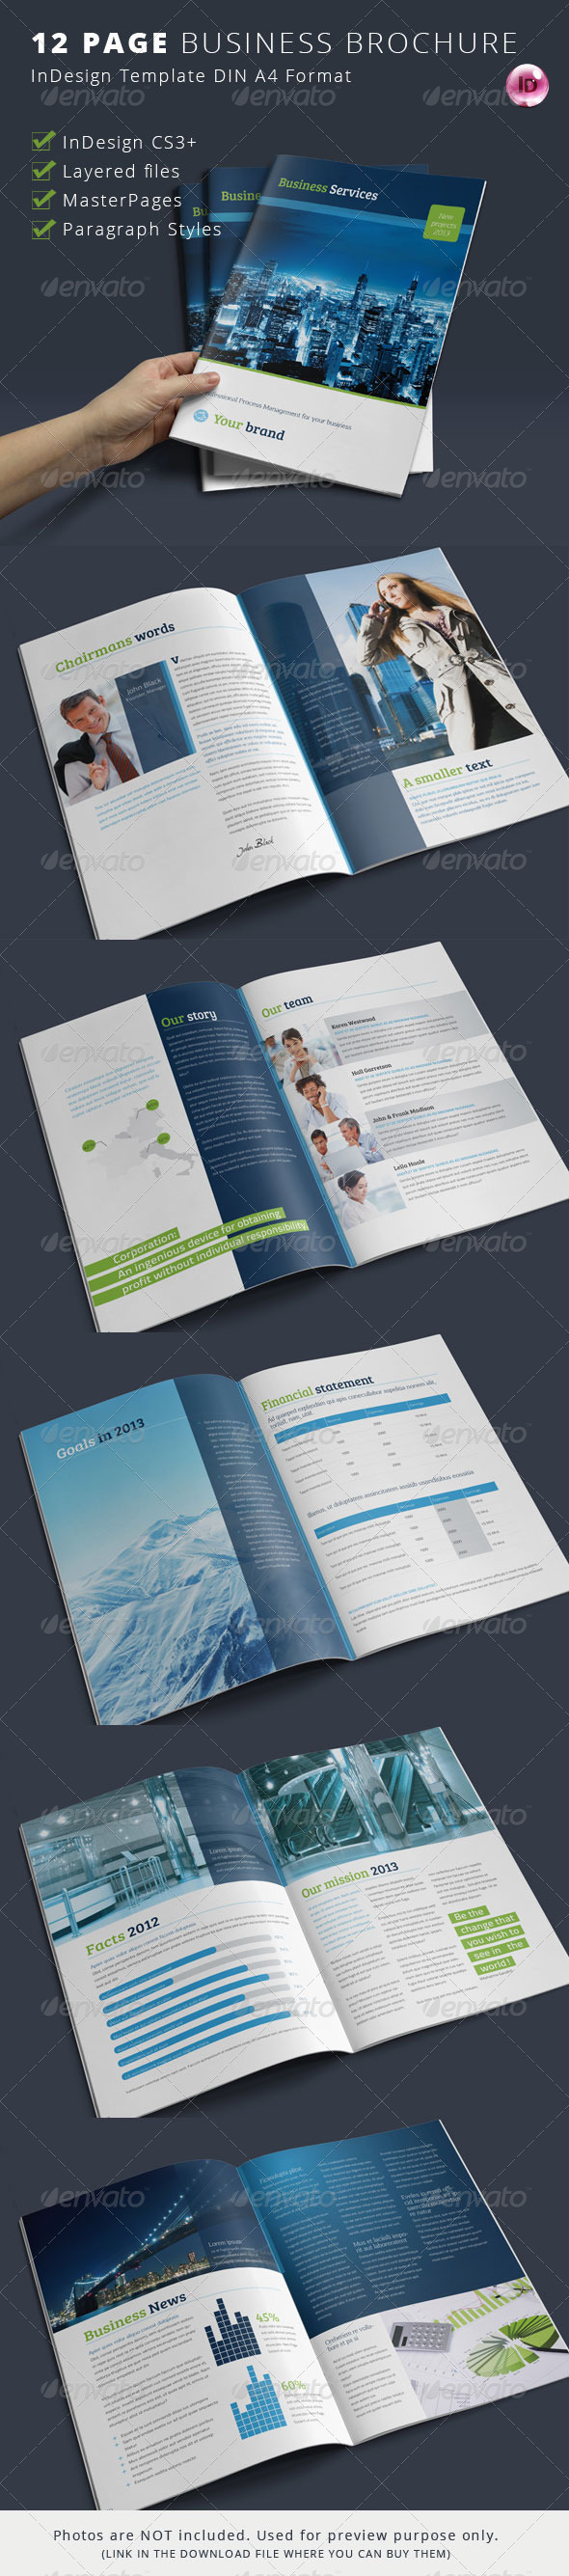 GraphicRiver 12 Page Business Brochure 6767131